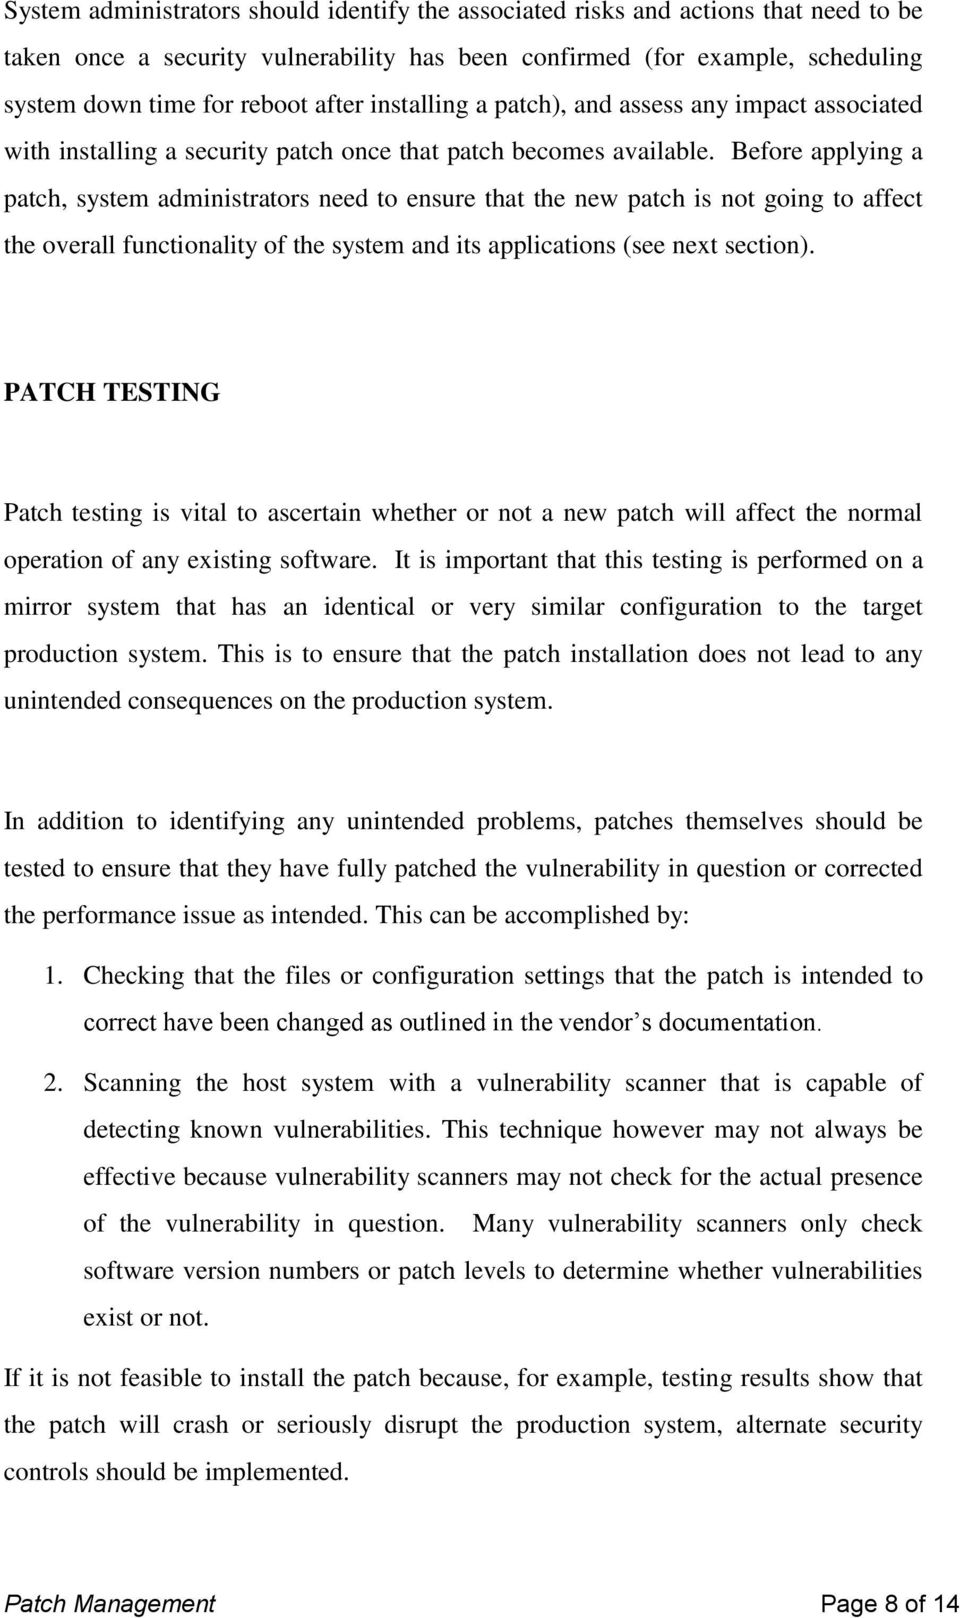 Before applying a patch, system administrators need to ensure that the new patch is not going to affect the overall functionality of the system and its applications (see next section).